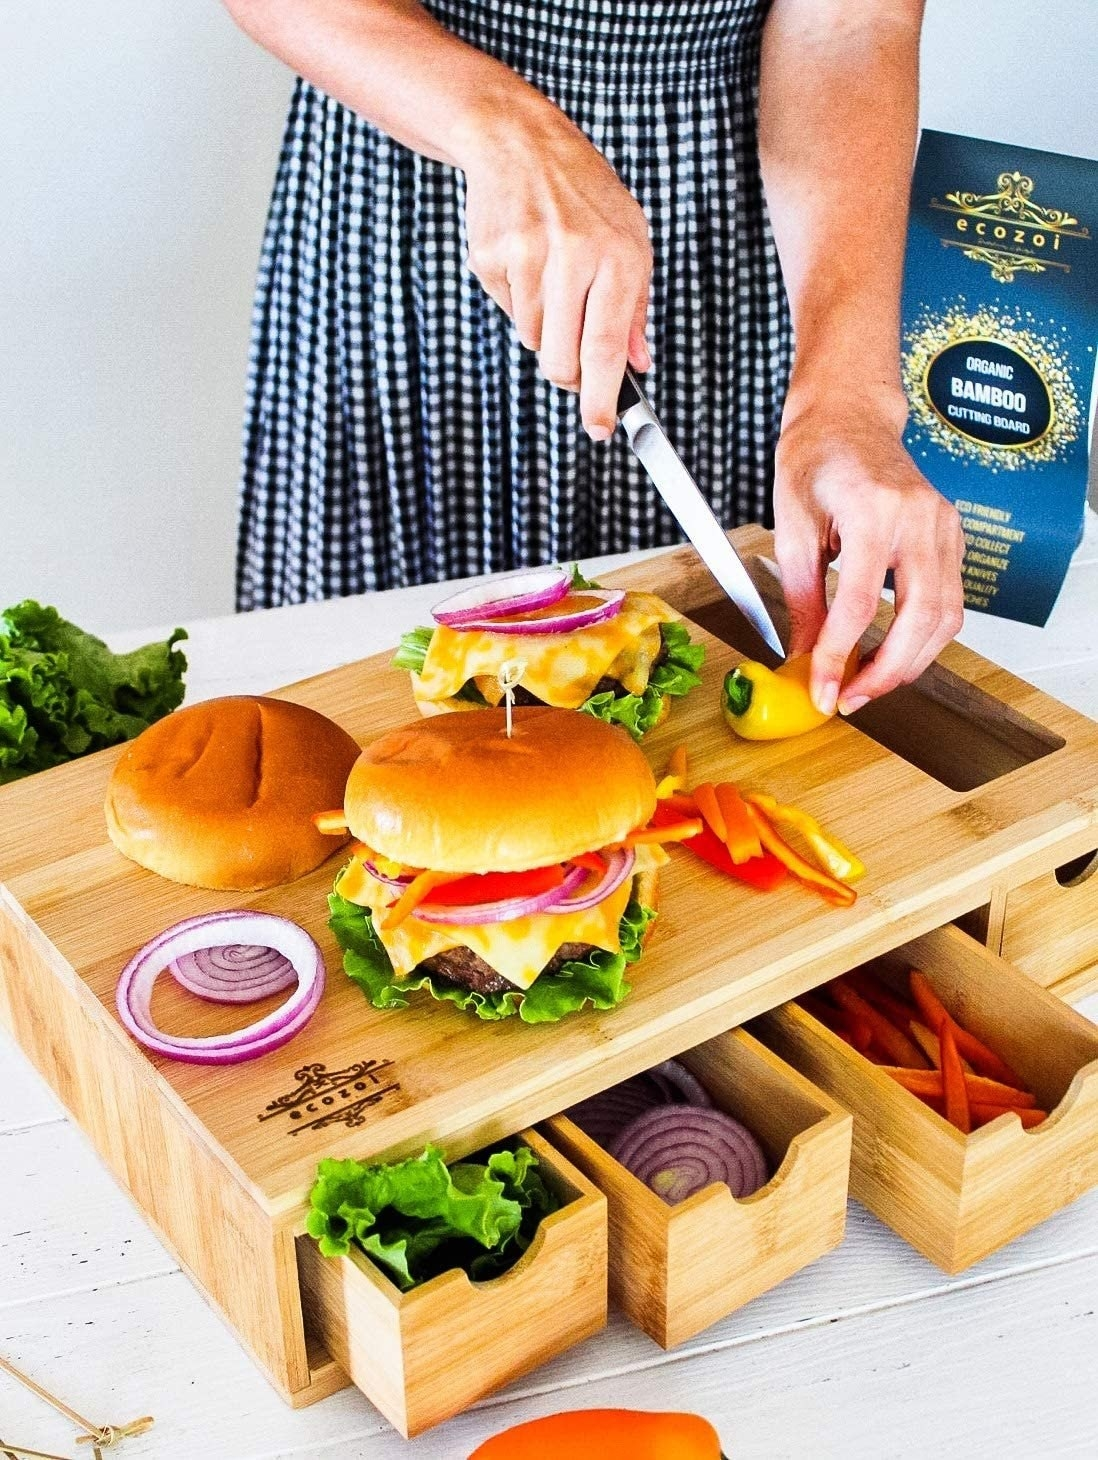 Model uses the bamboo cutting board to store vegetables as they prepare a burger